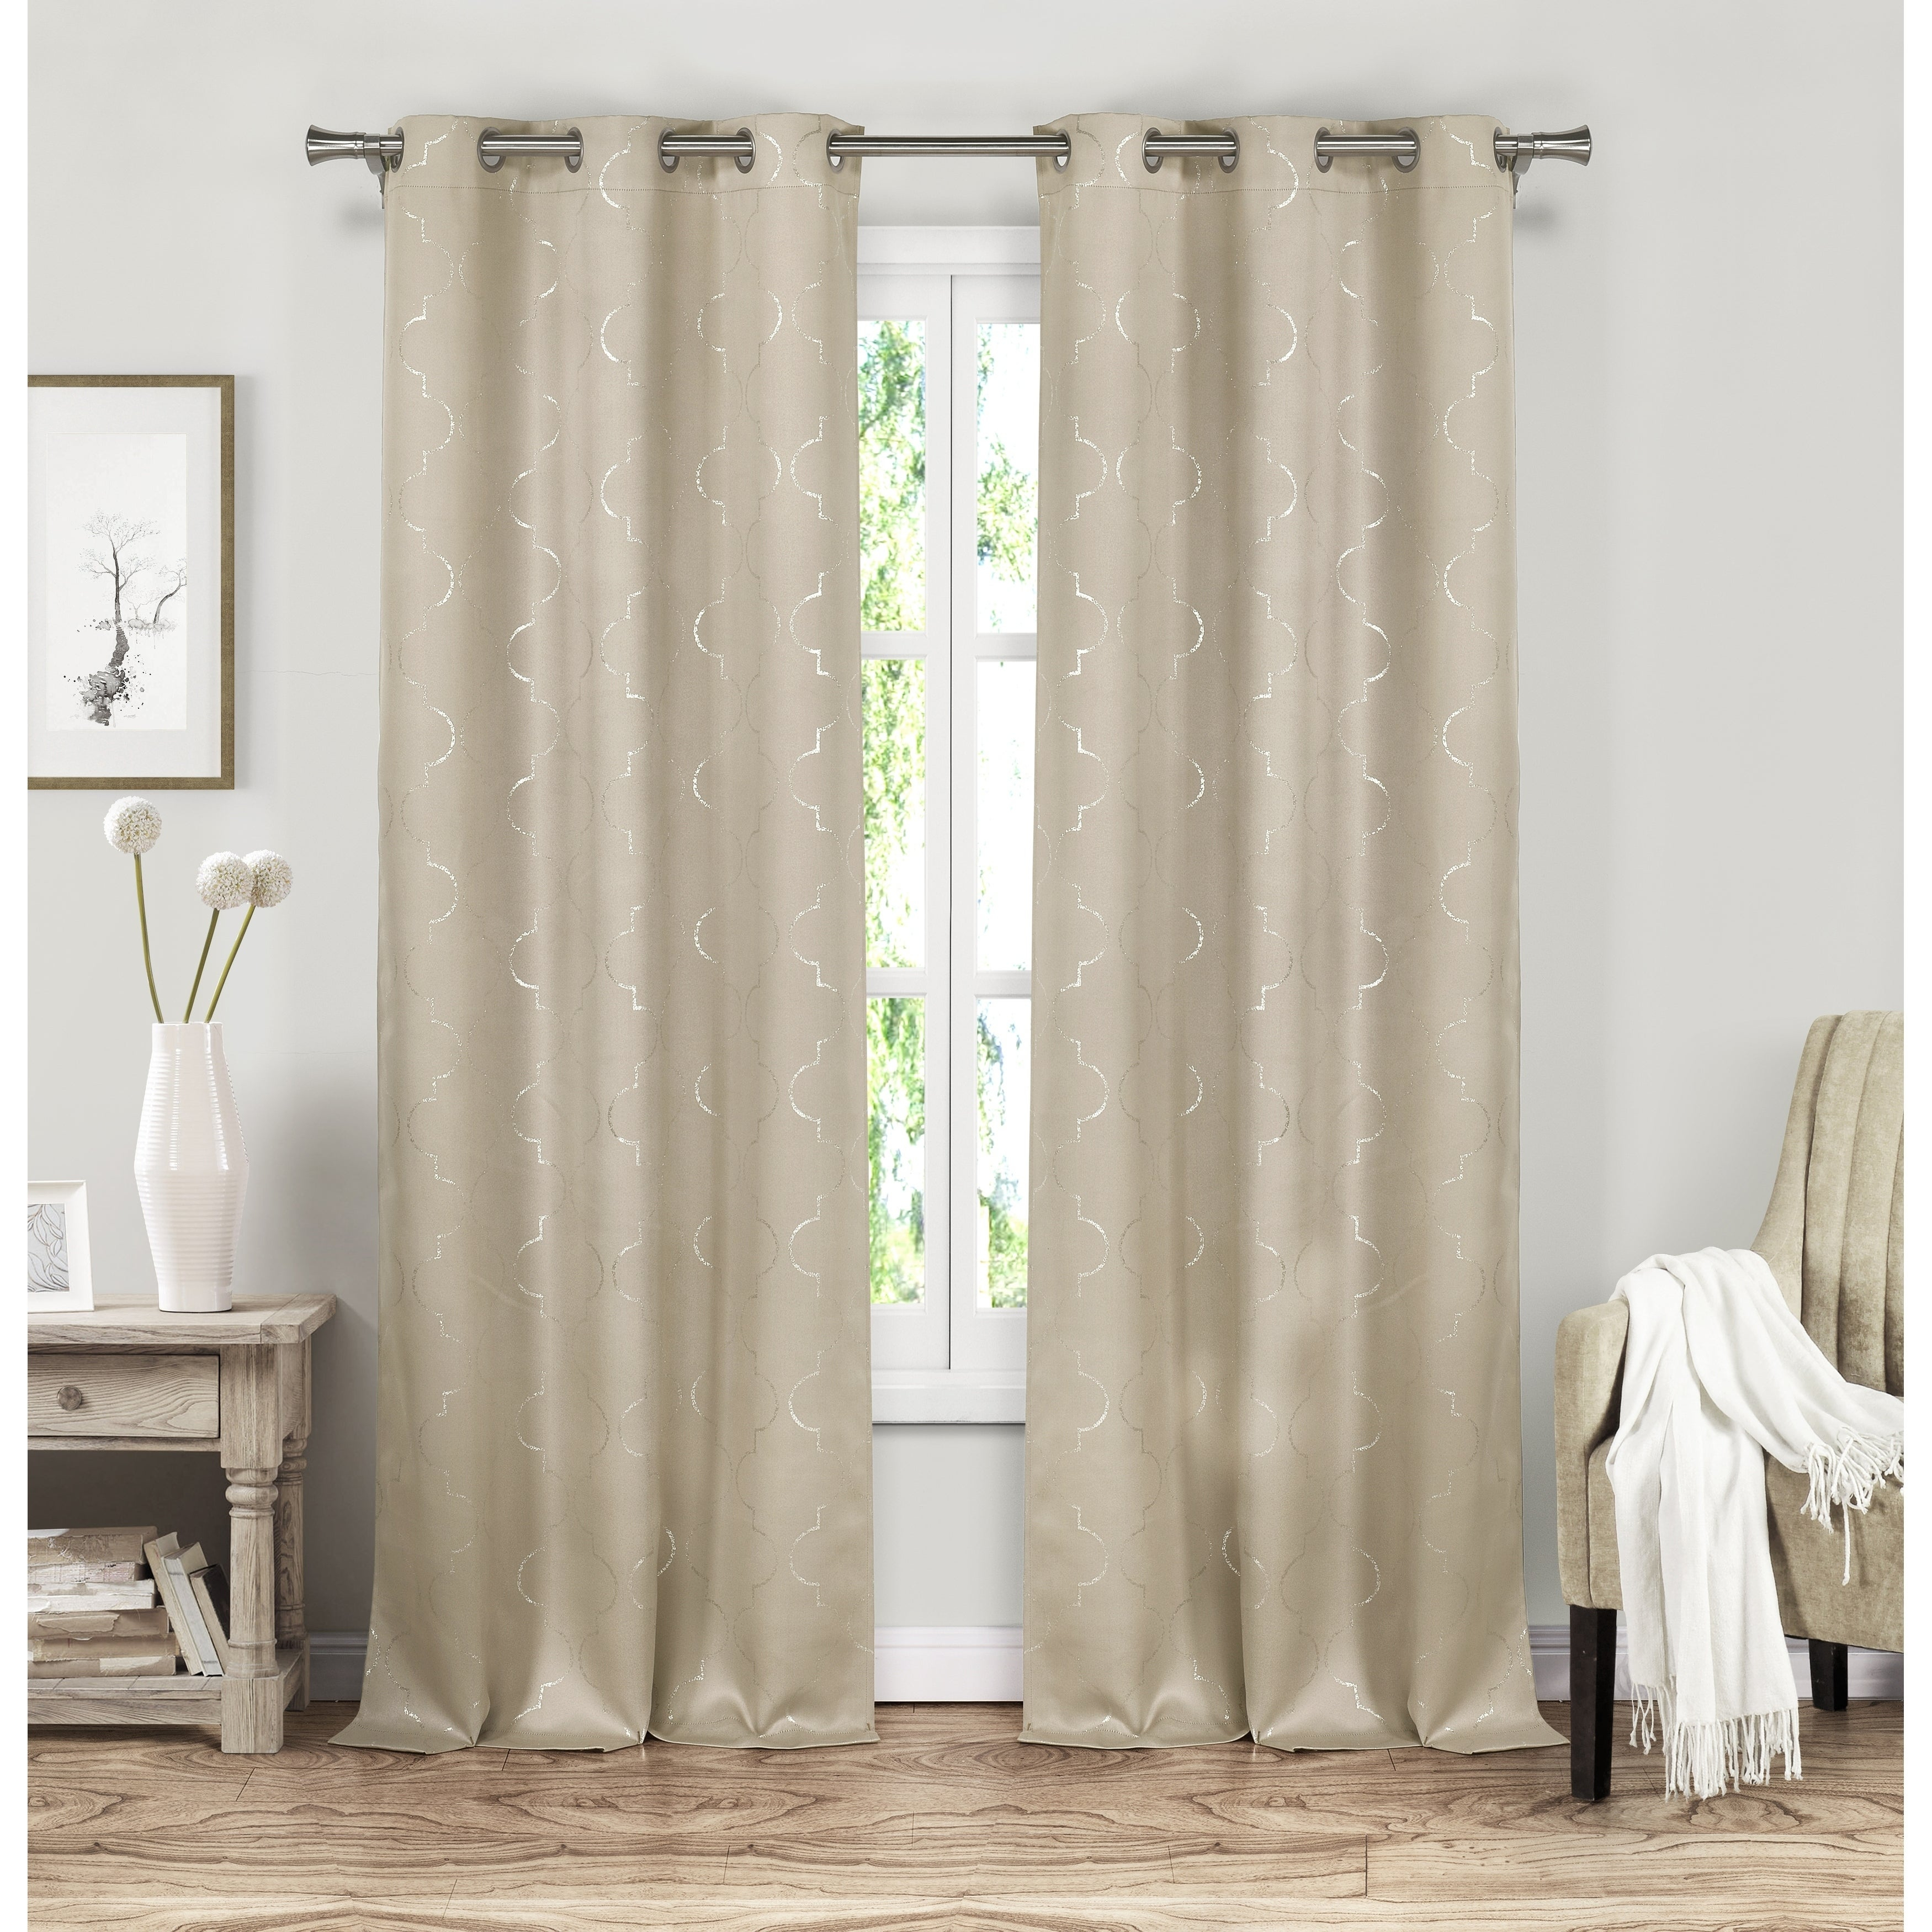 Duck River Stephanie Metallic Blackout Curtain Panel Pair – 37X84 Pertaining To Sateen Twill Weave Insulated Blackout Window Curtain Panel Pairs (View 6 of 20)